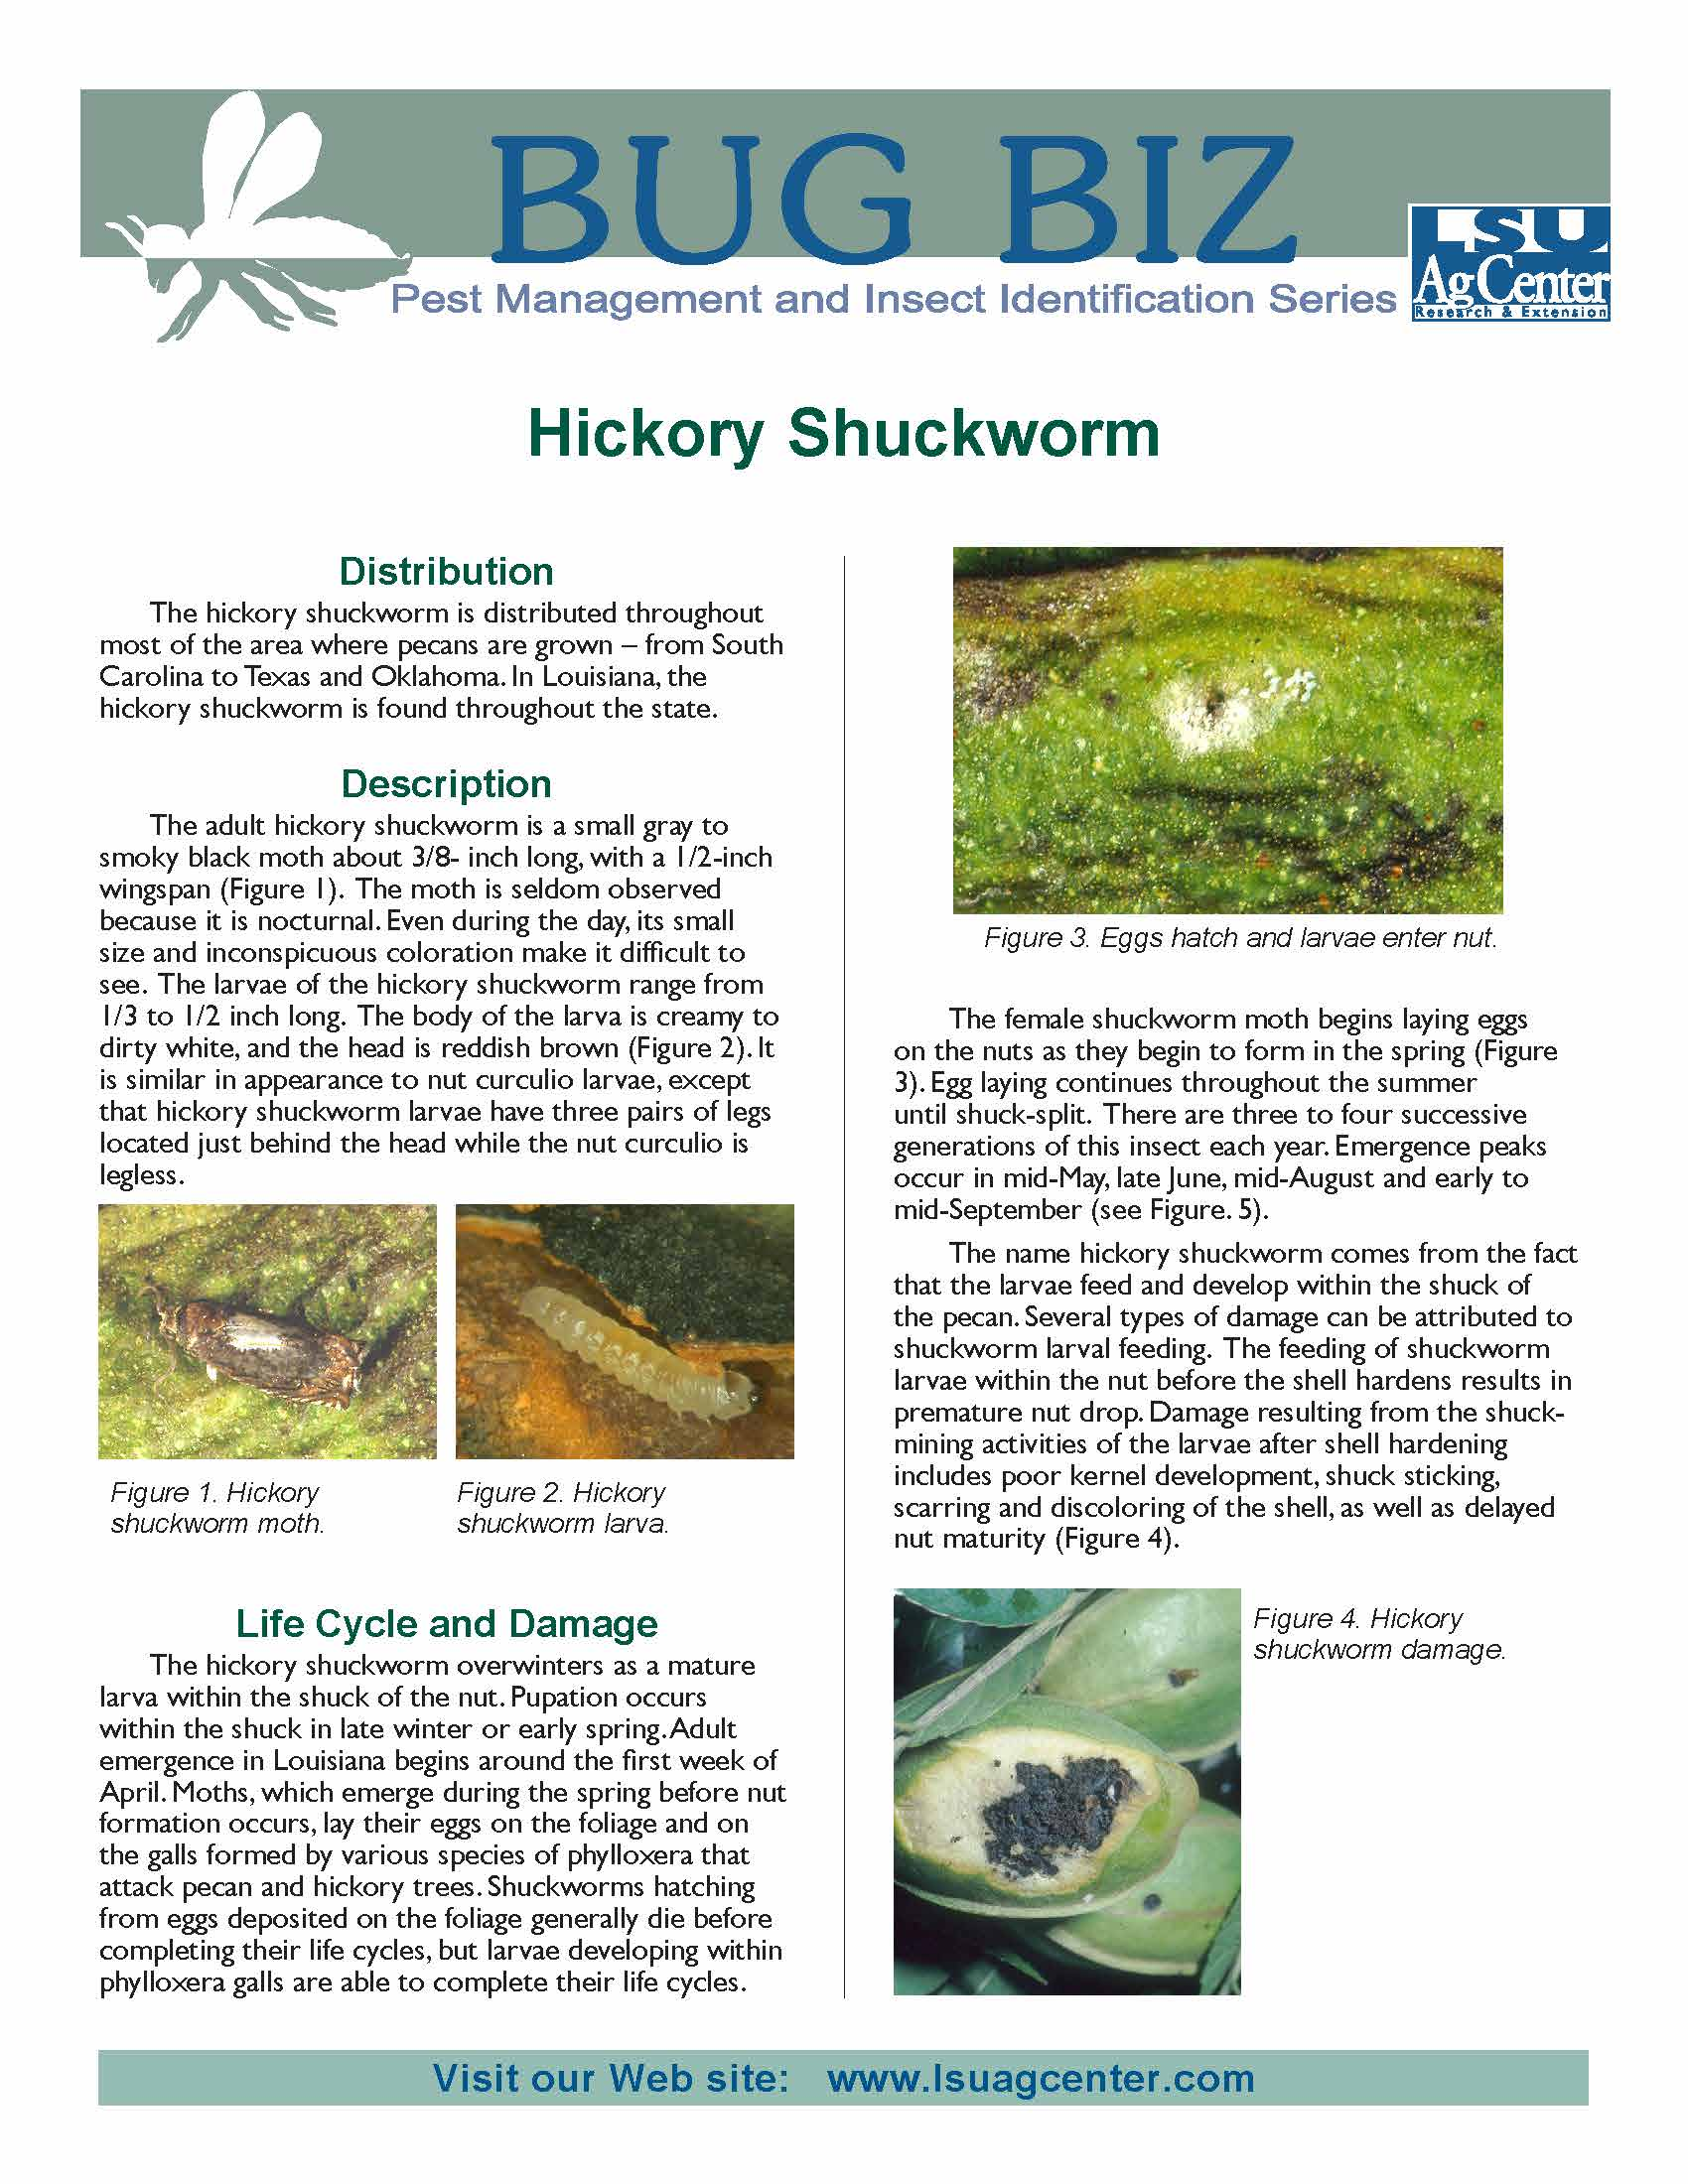 Bug Biz:  Hickory Shuckworm